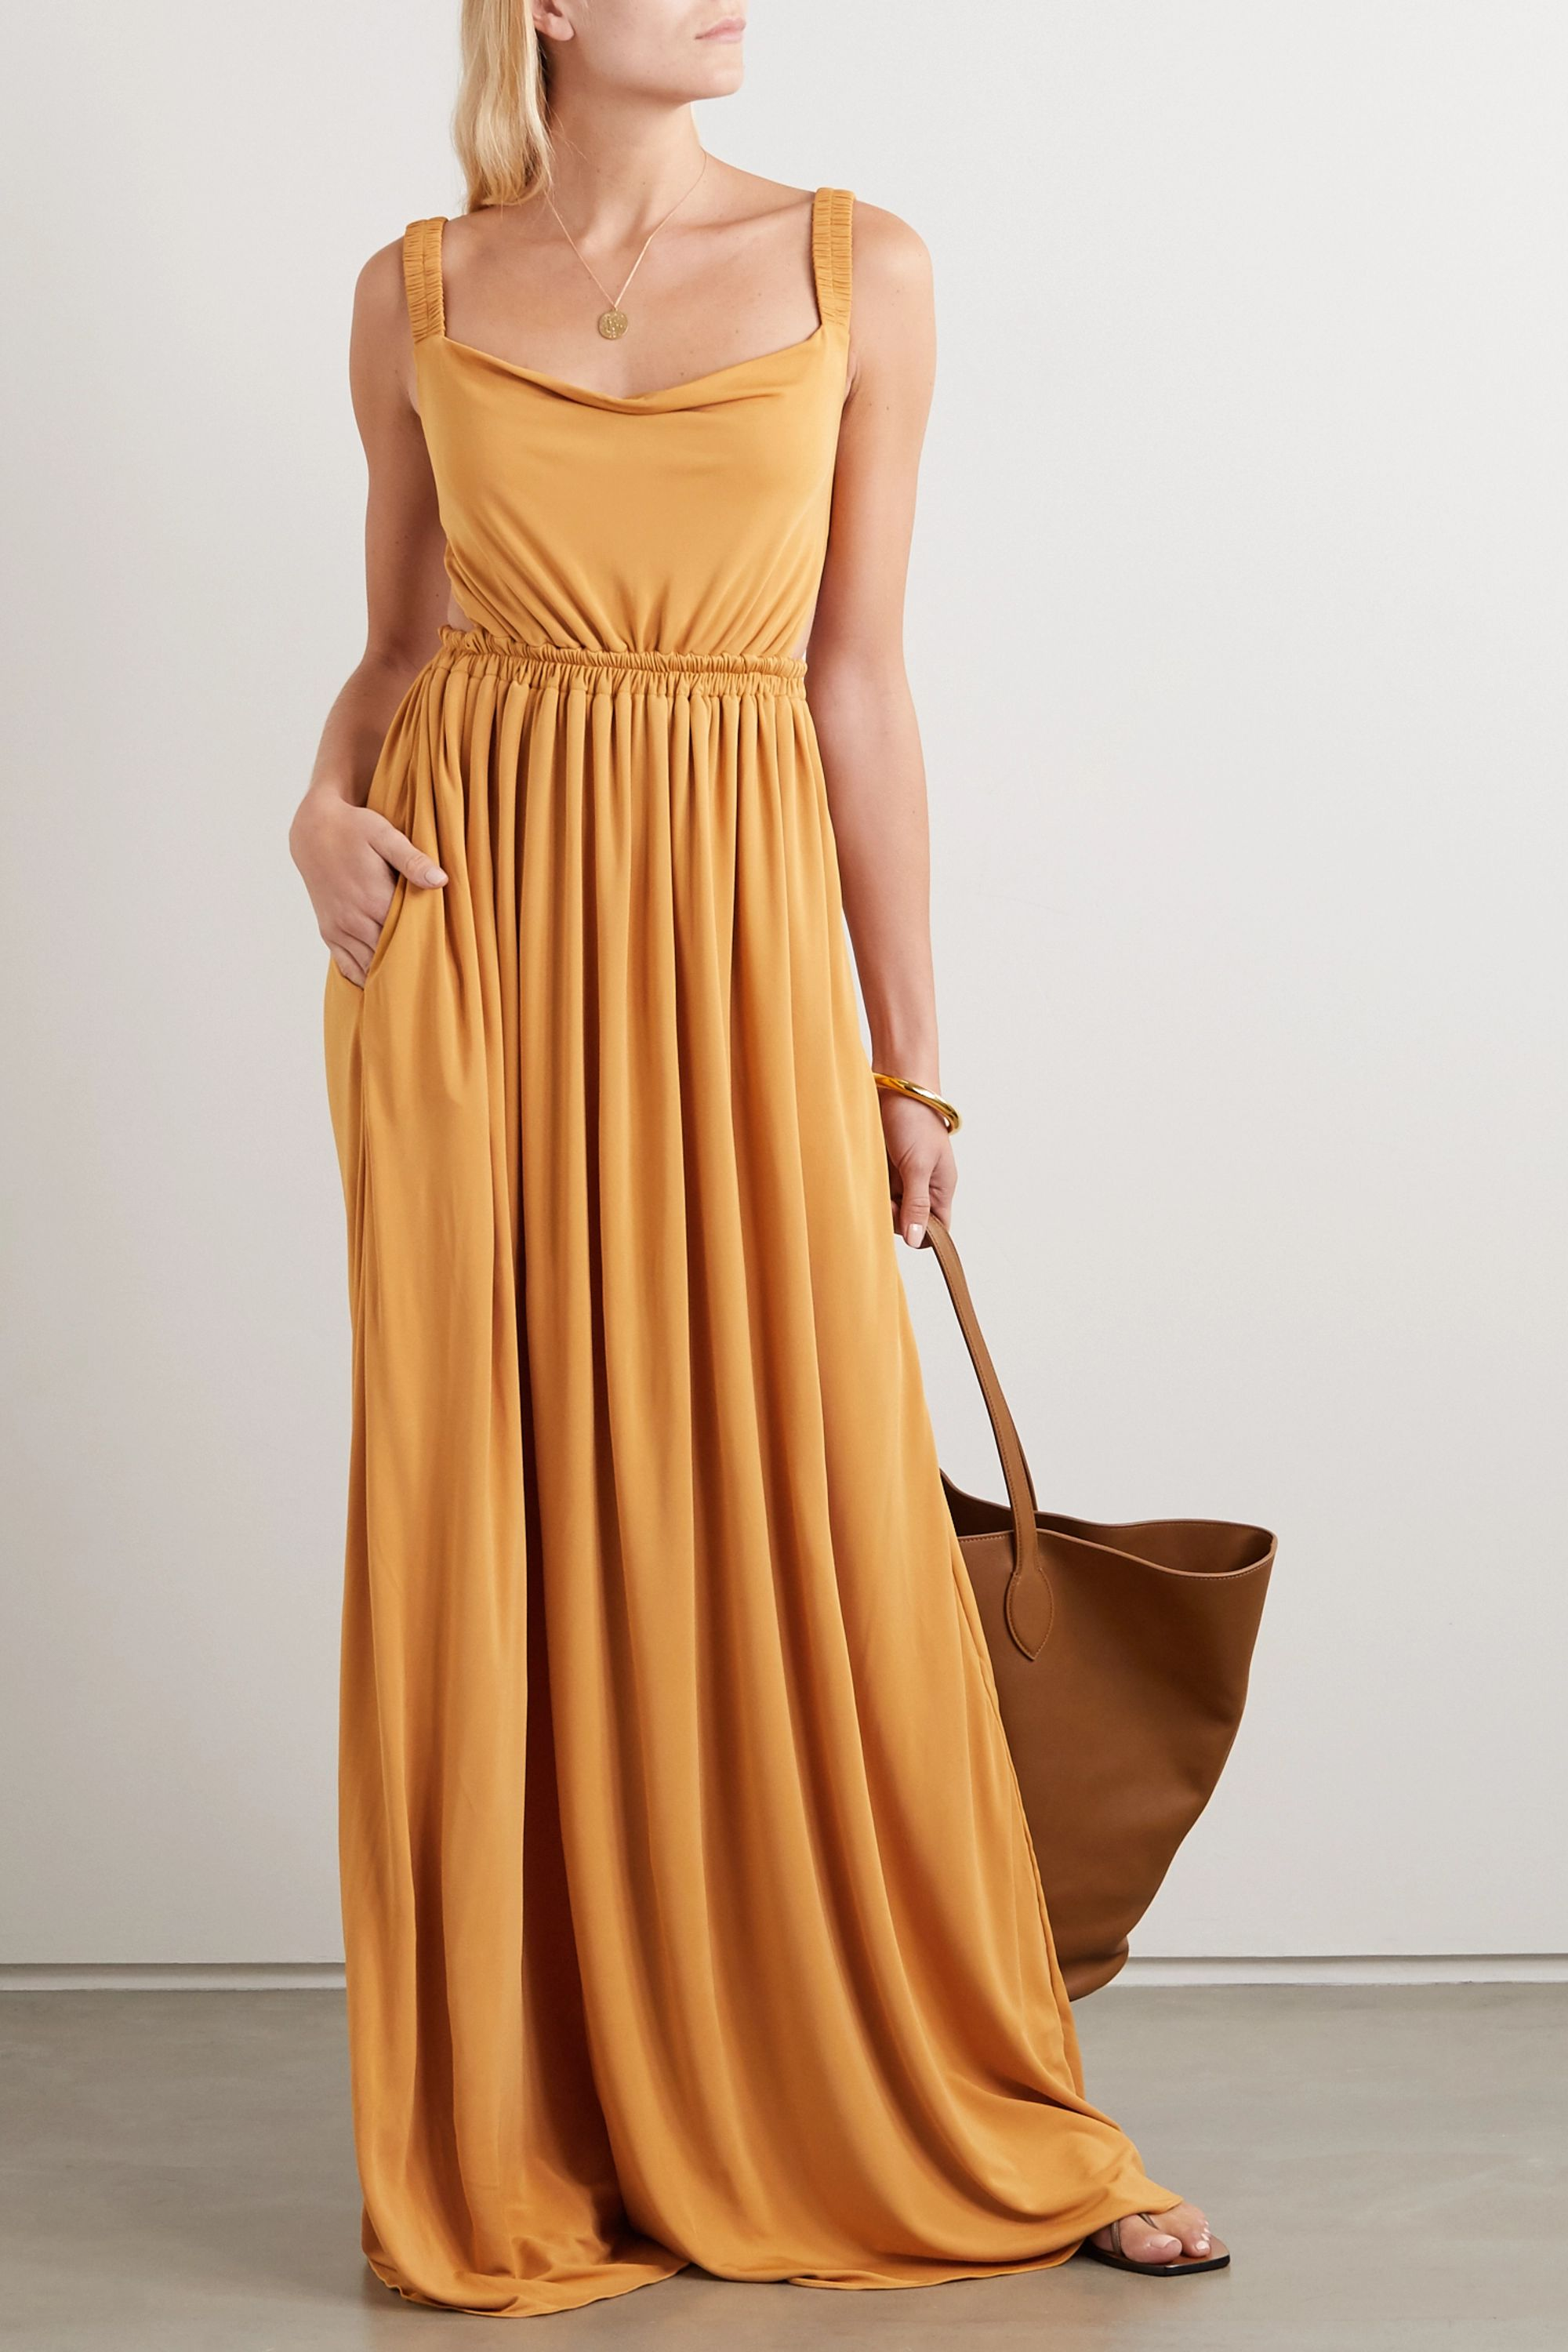 Matteau + NET SUSTAIN gathered jersey maxi dress